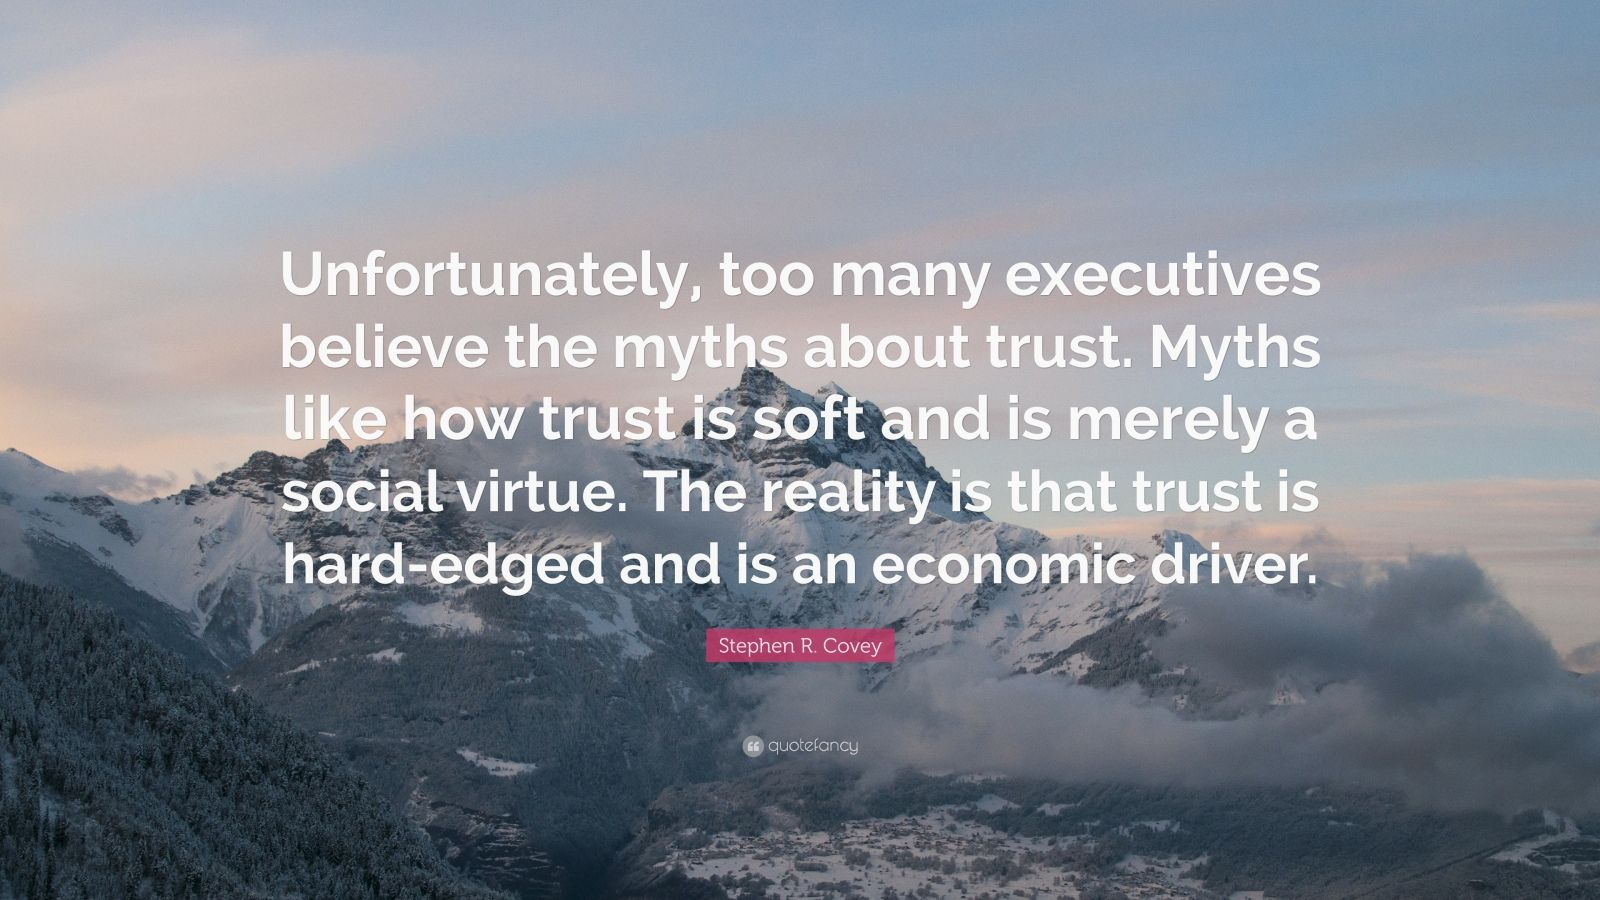 """Stephen R. Covey Quote: """"Unfortunately, too many executives believe the myths about trust. Myths like how trust is soft and is merely a social virtue. The reality is that trust is hard-edged and is an economic driver."""""""